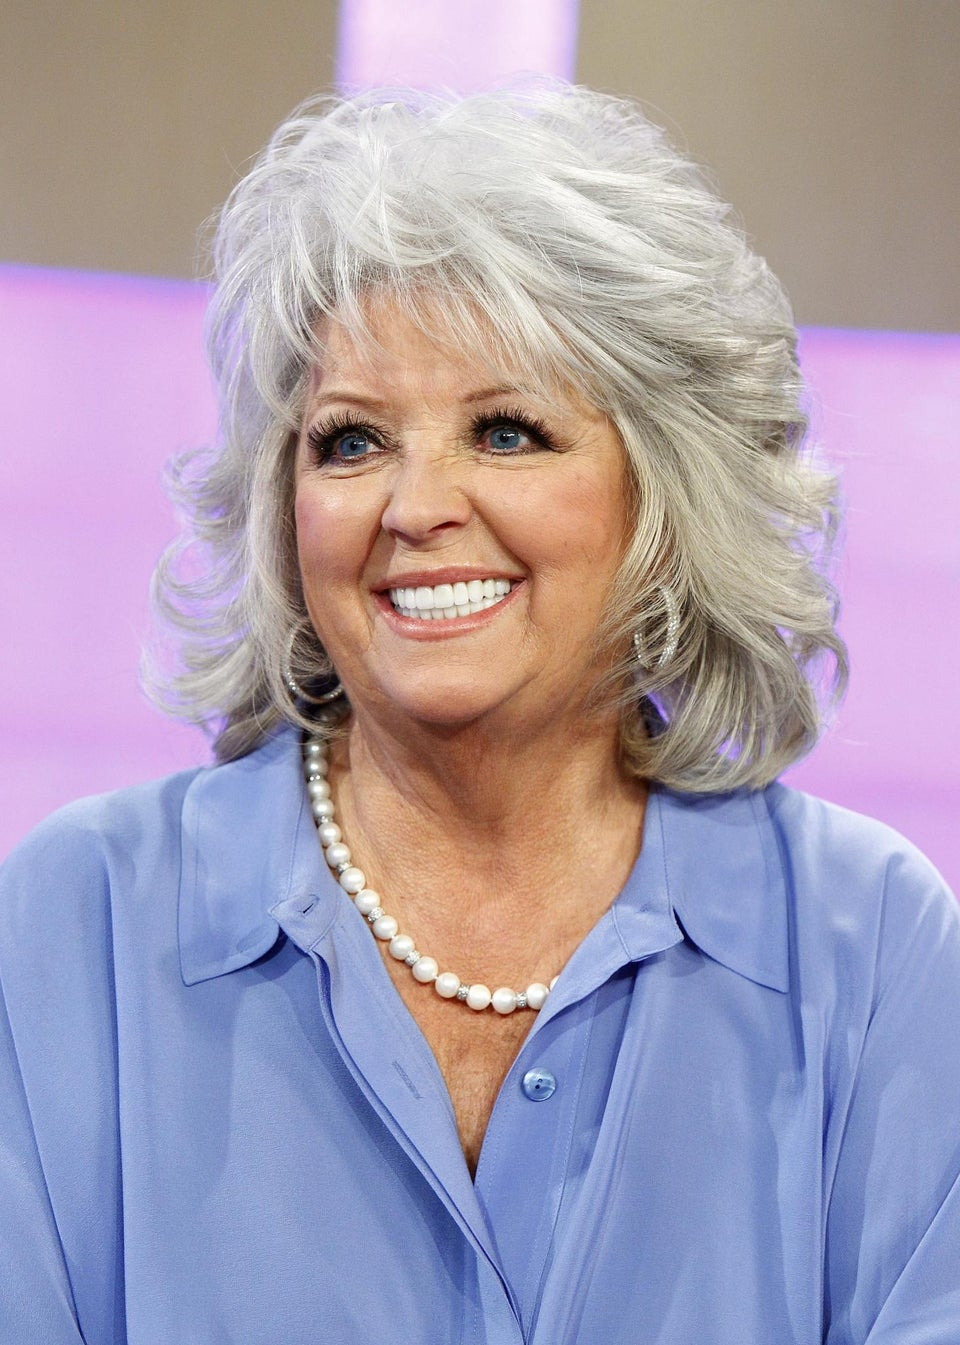 Paula Deen Fired From the Food Network